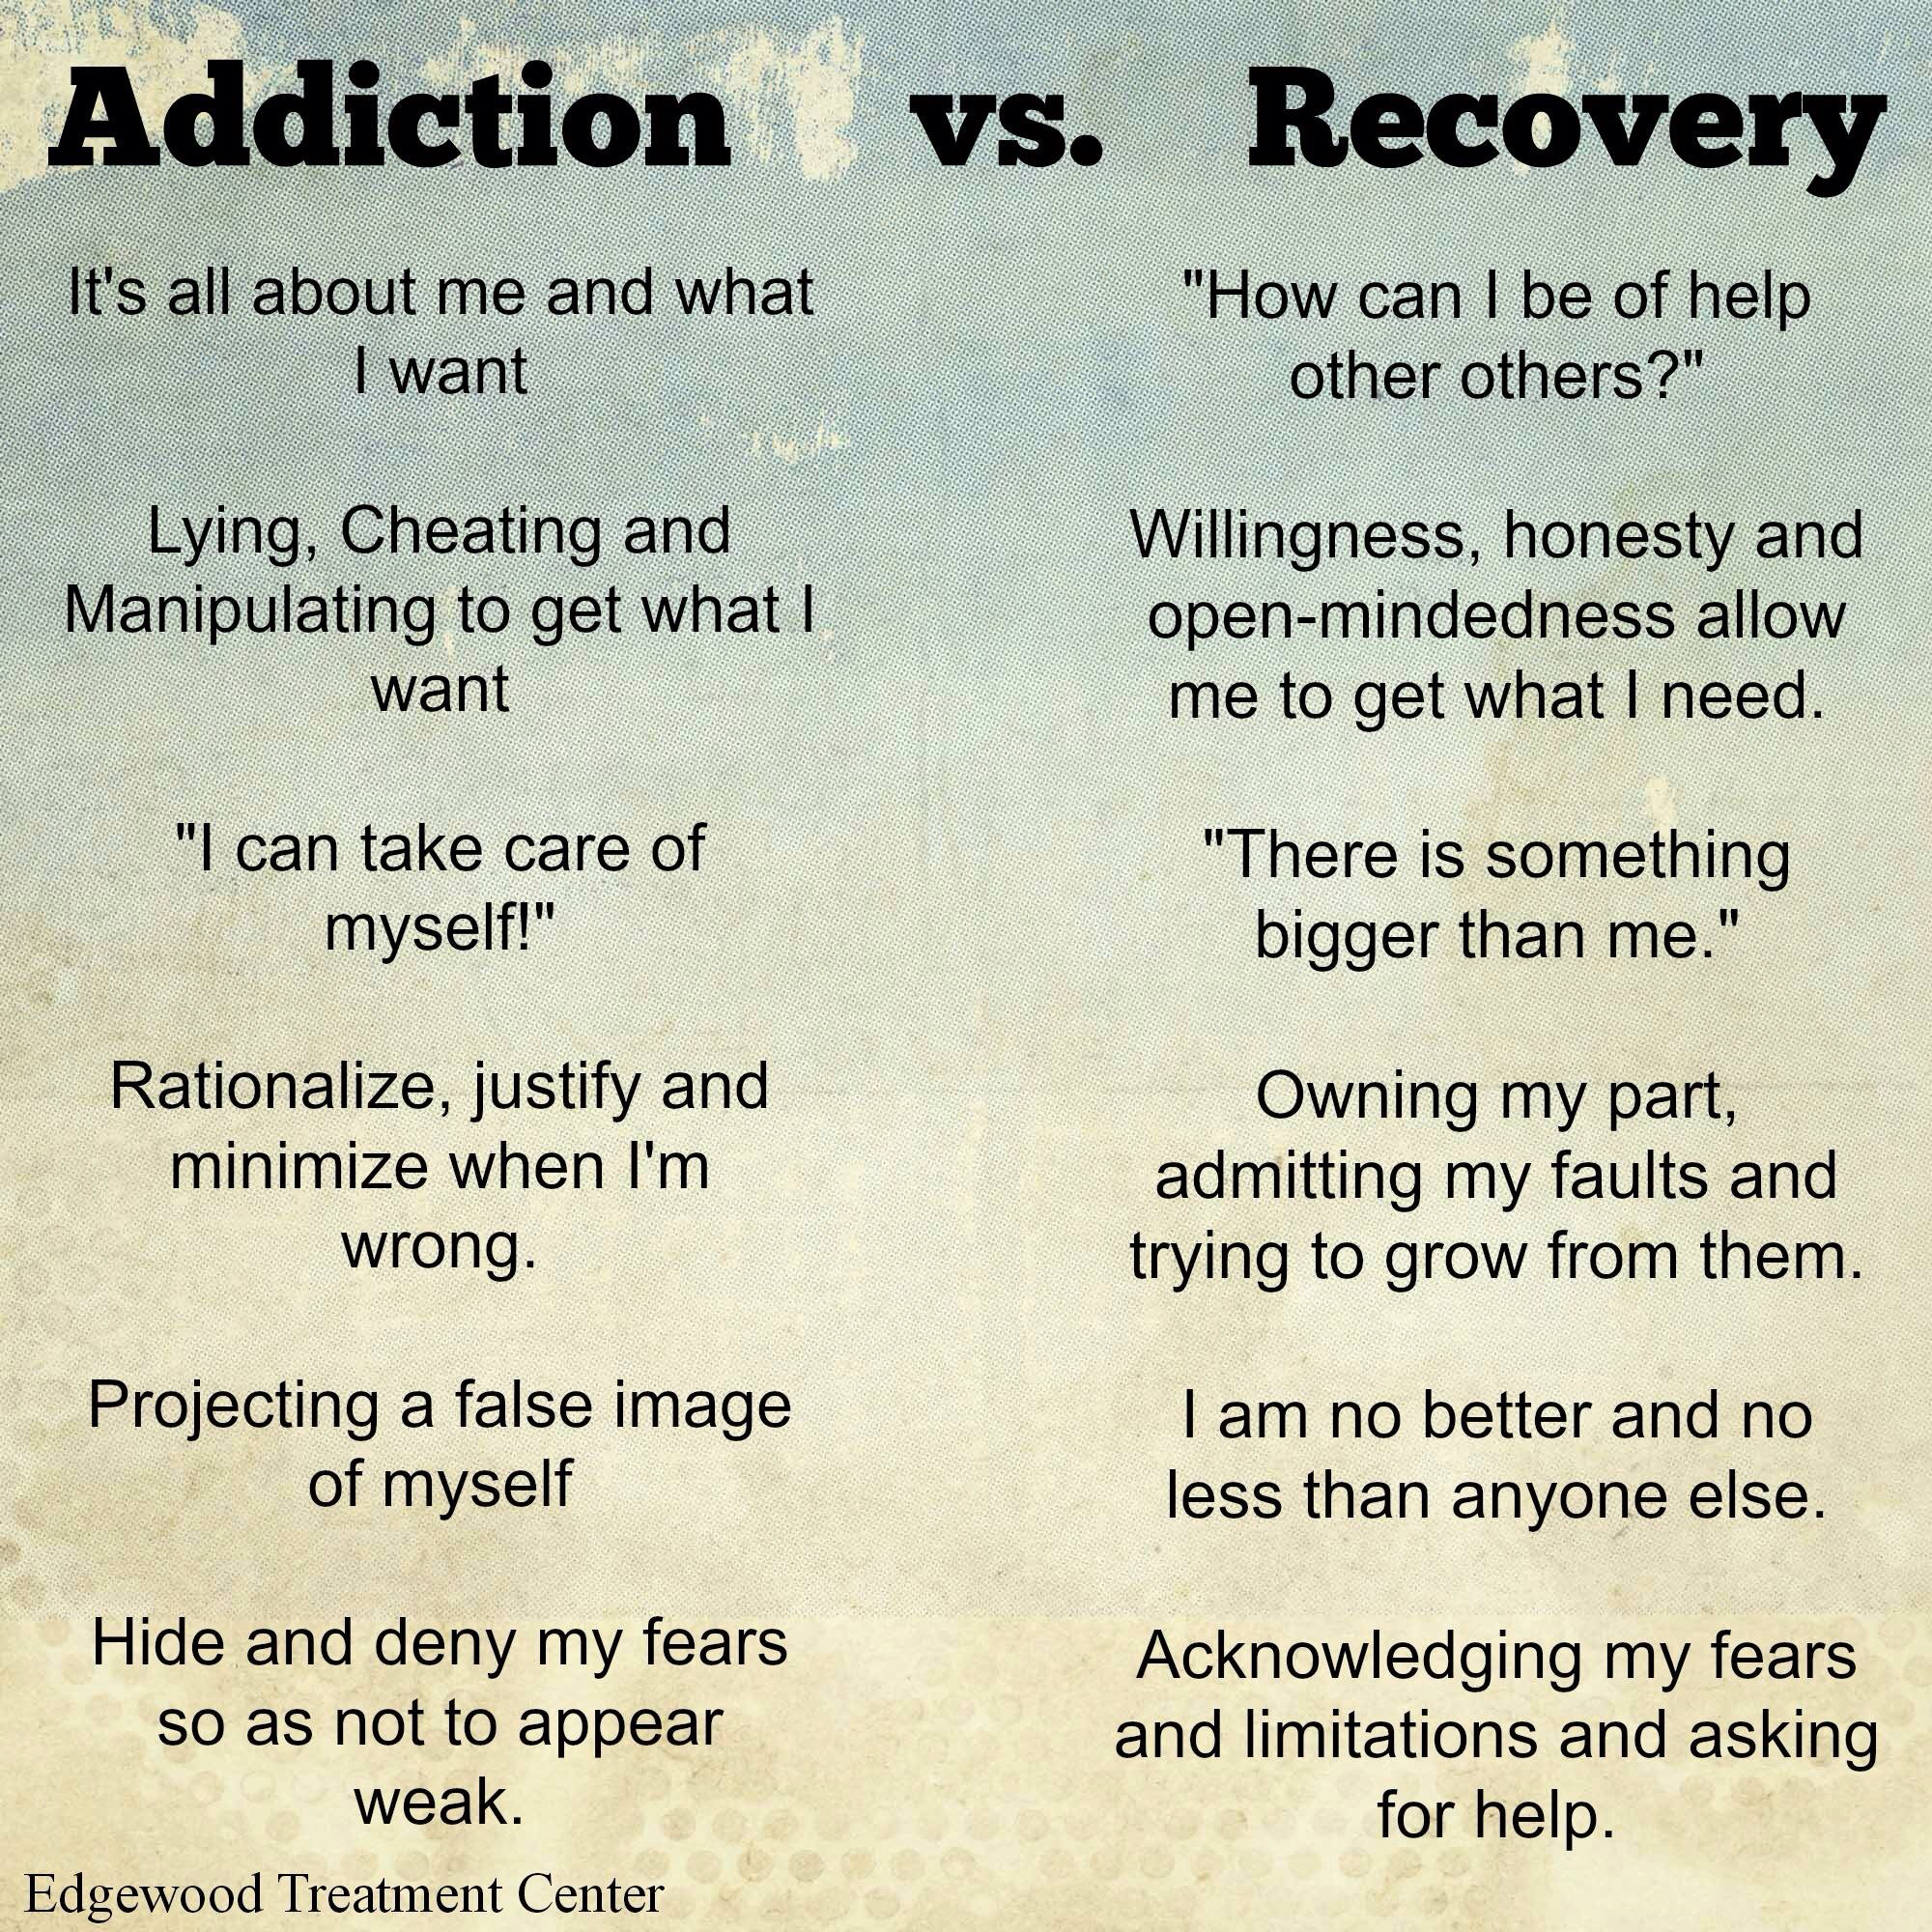 Drug Addiction Quotes And Sayings. QuotesGram